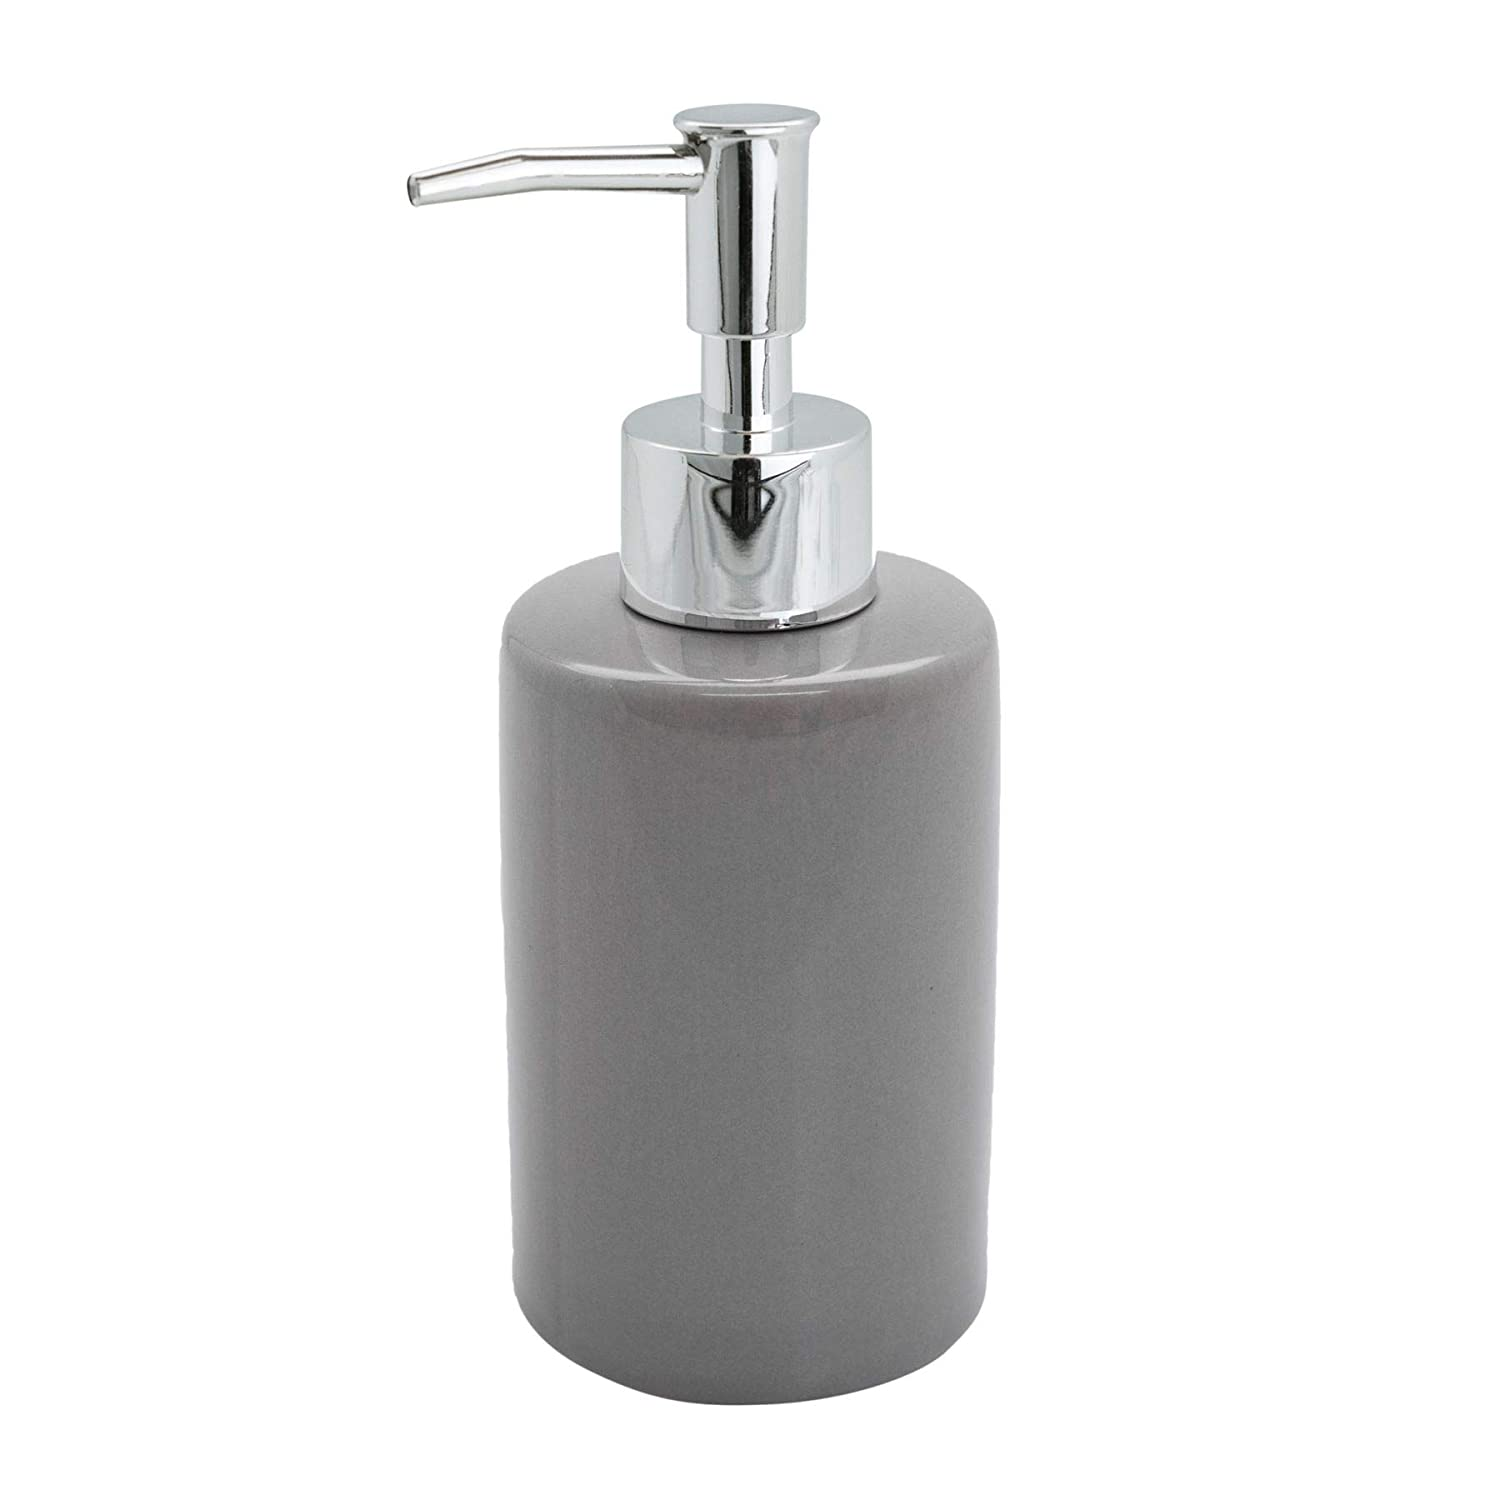 Harbour Housewares Glazed Ceramic Pump Soap Dispenser Bottle - 280ml - Grey